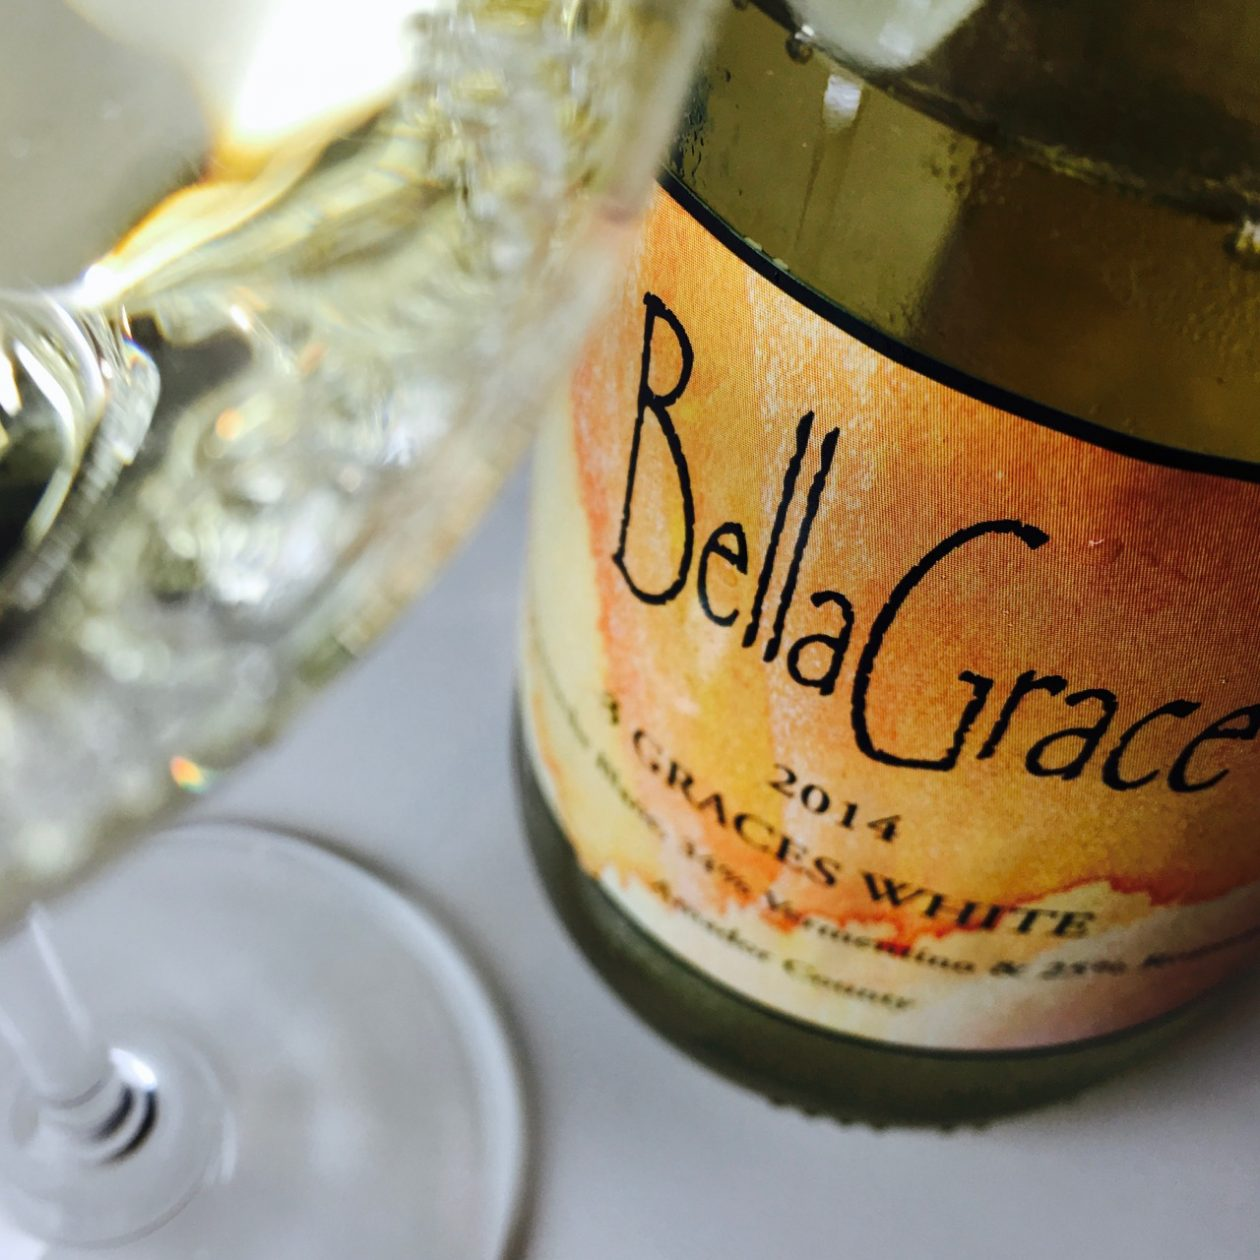 2014 Bella Grace Vineyards Three Graces White Blend Amador County